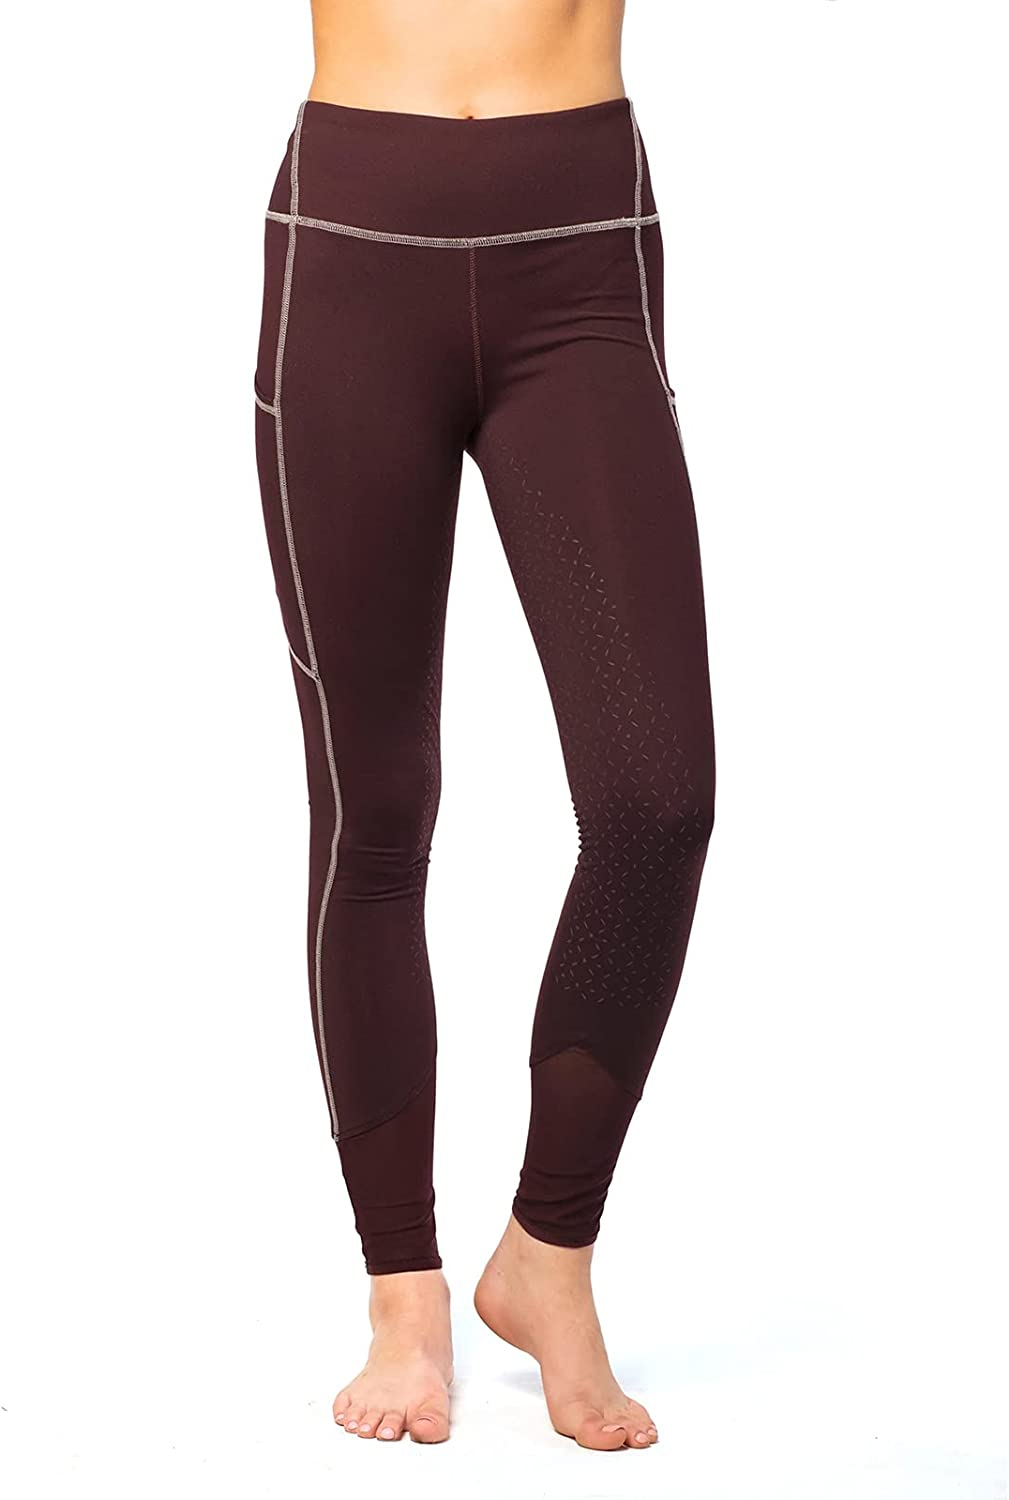 Goode Rider Full Seat M Recommended Shaper Finally resale start Burgundy Tights